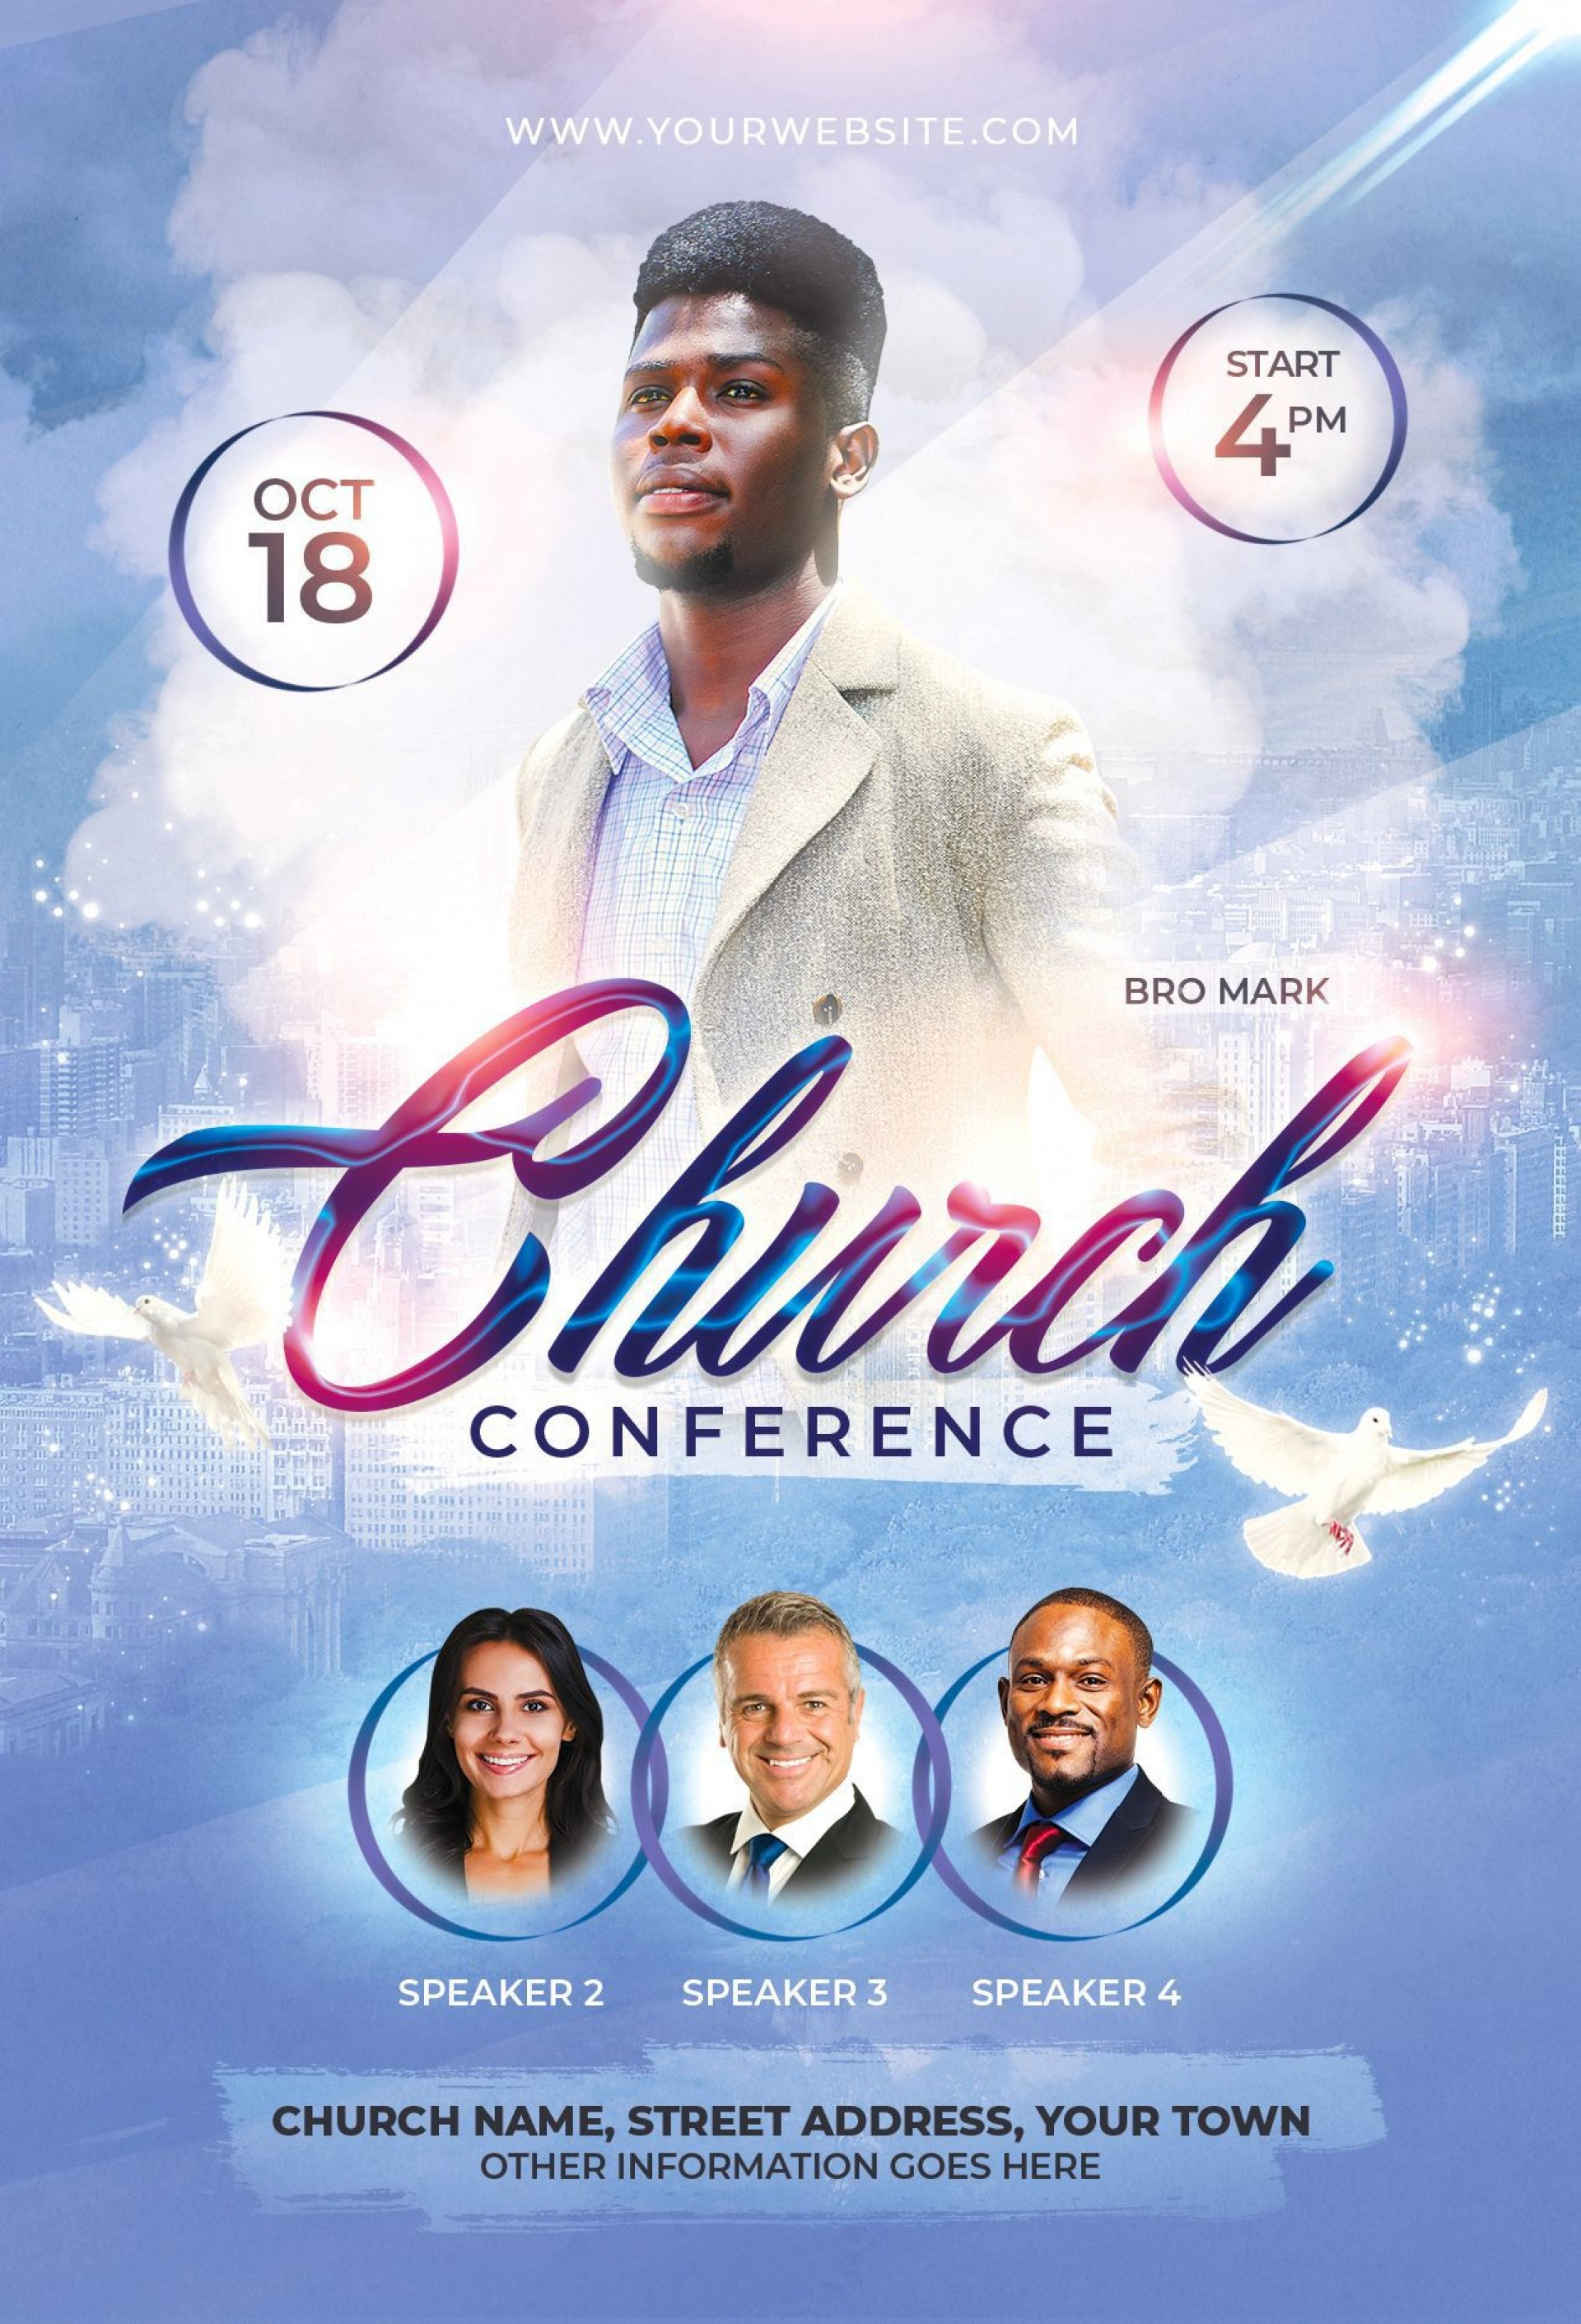 000 Unforgettable Church Flyer Template Free Download Concept  Event Psd1920